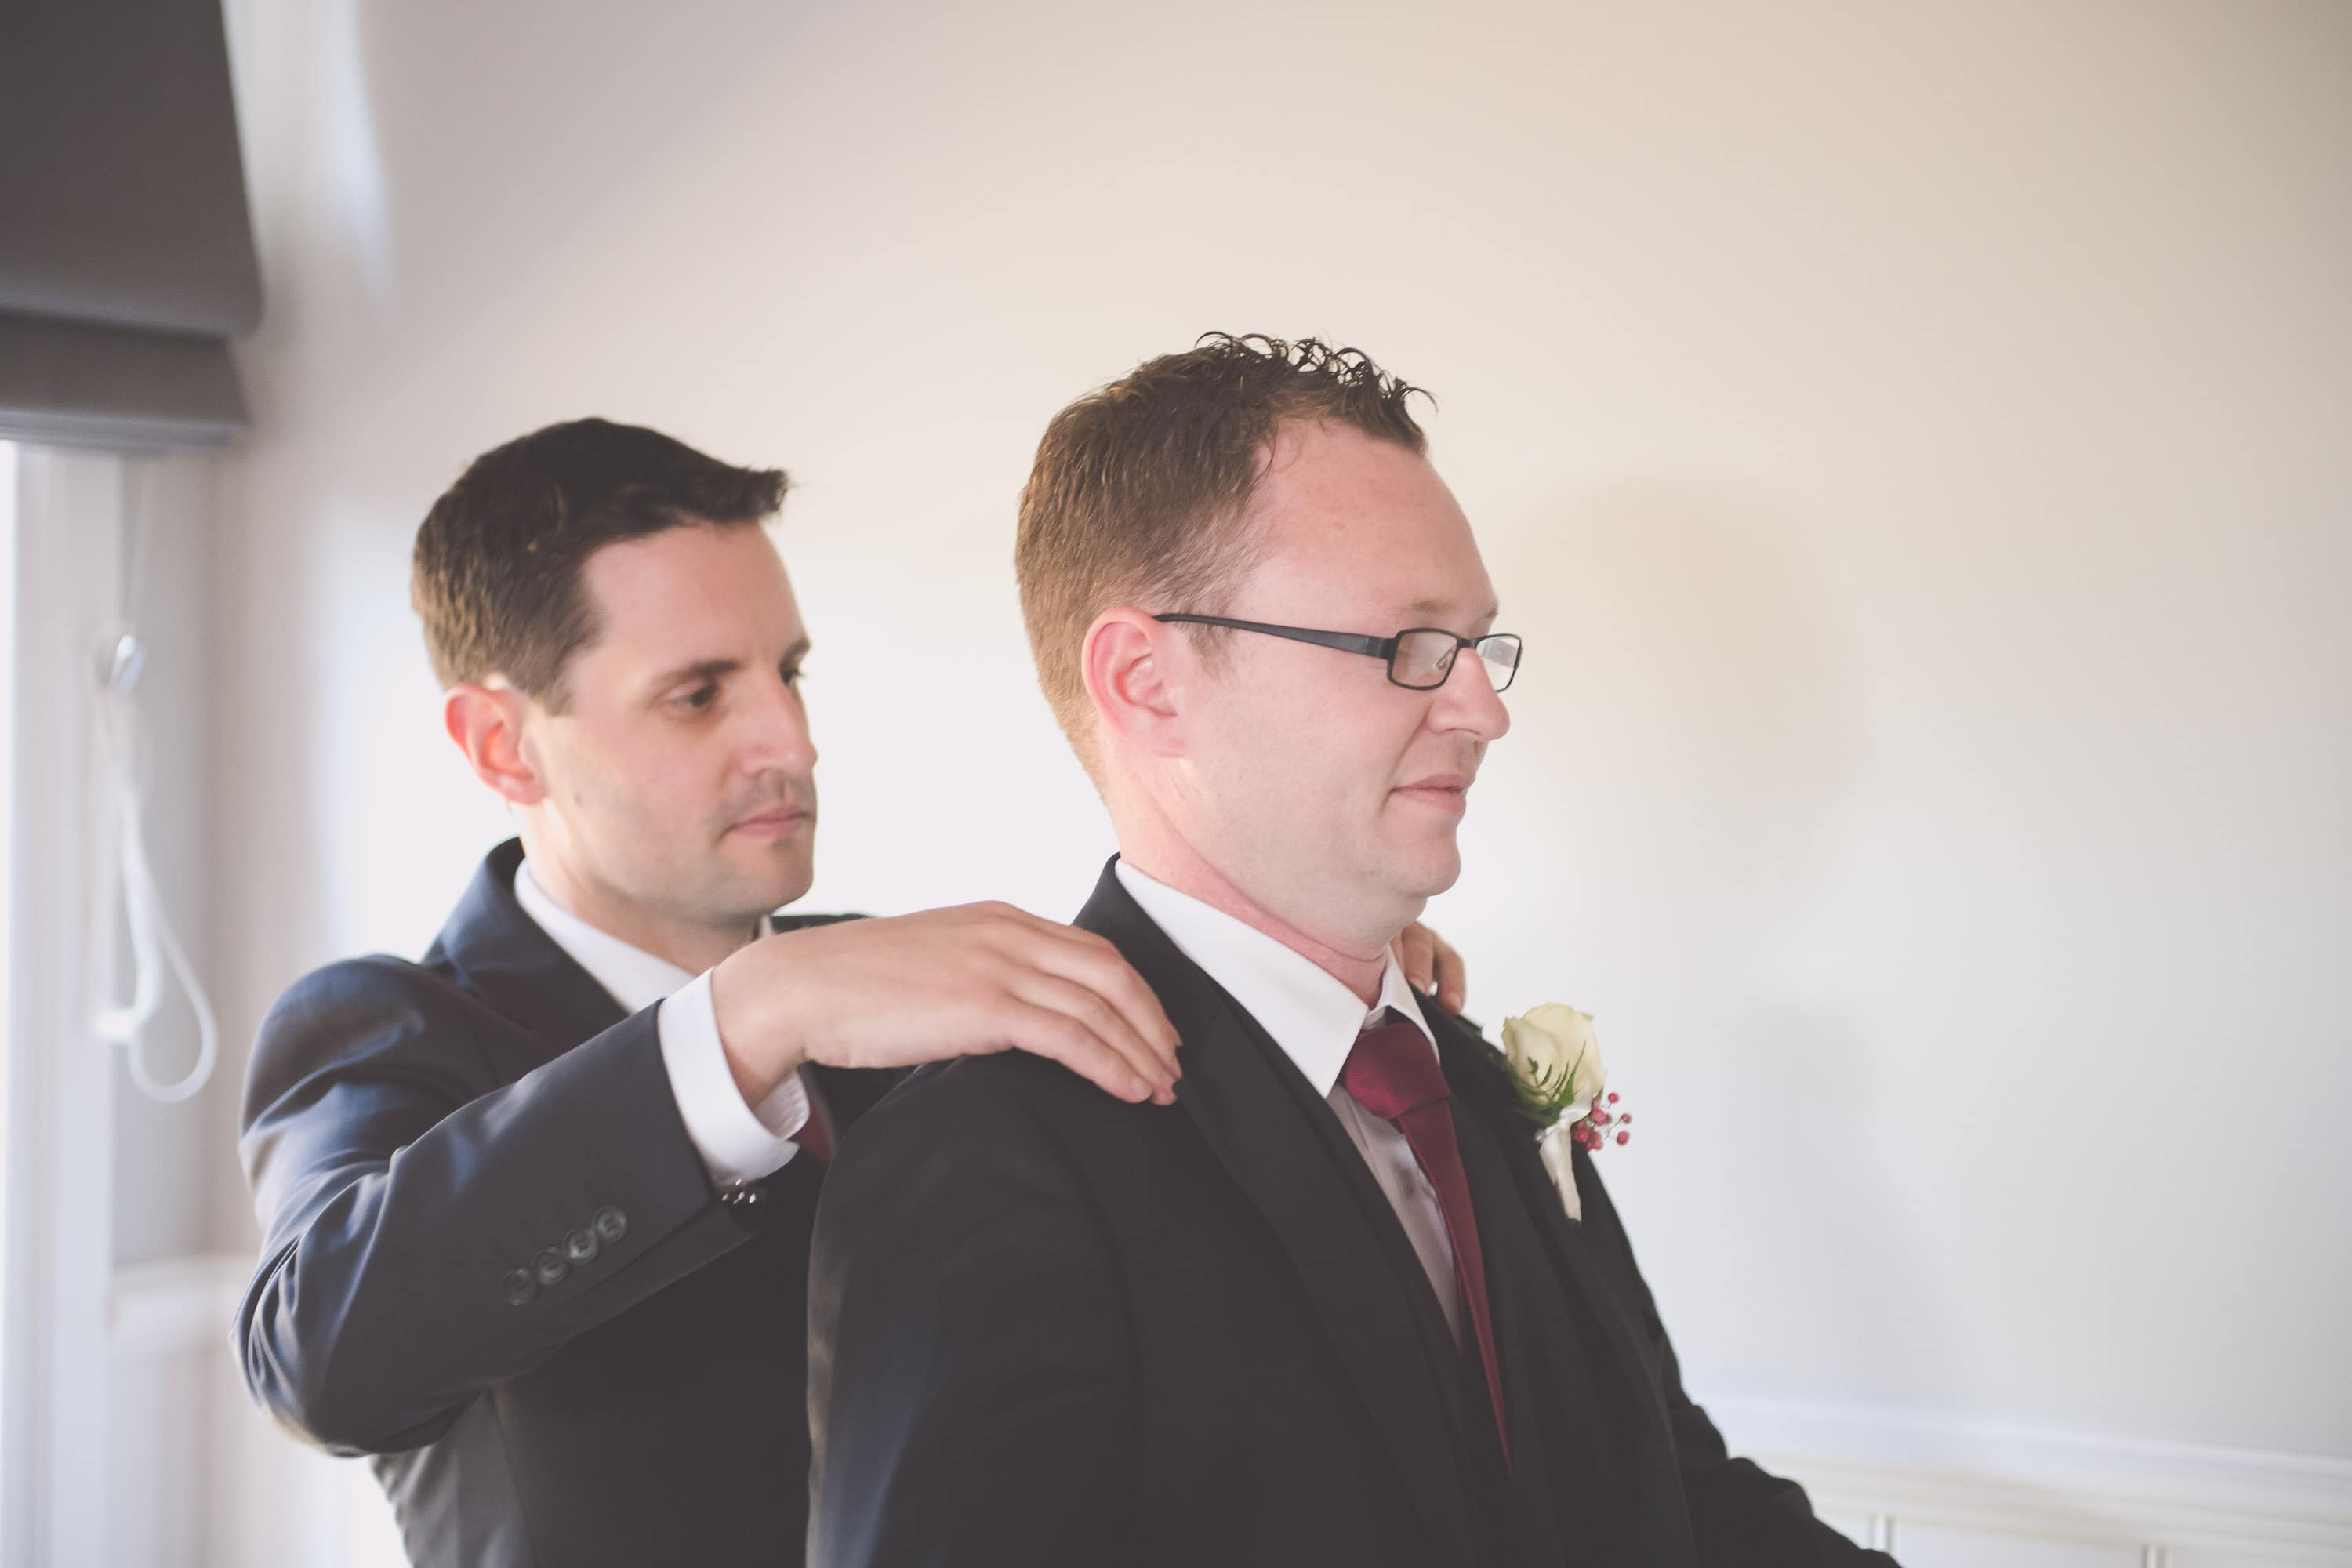 A best man helps his groom into his jacket